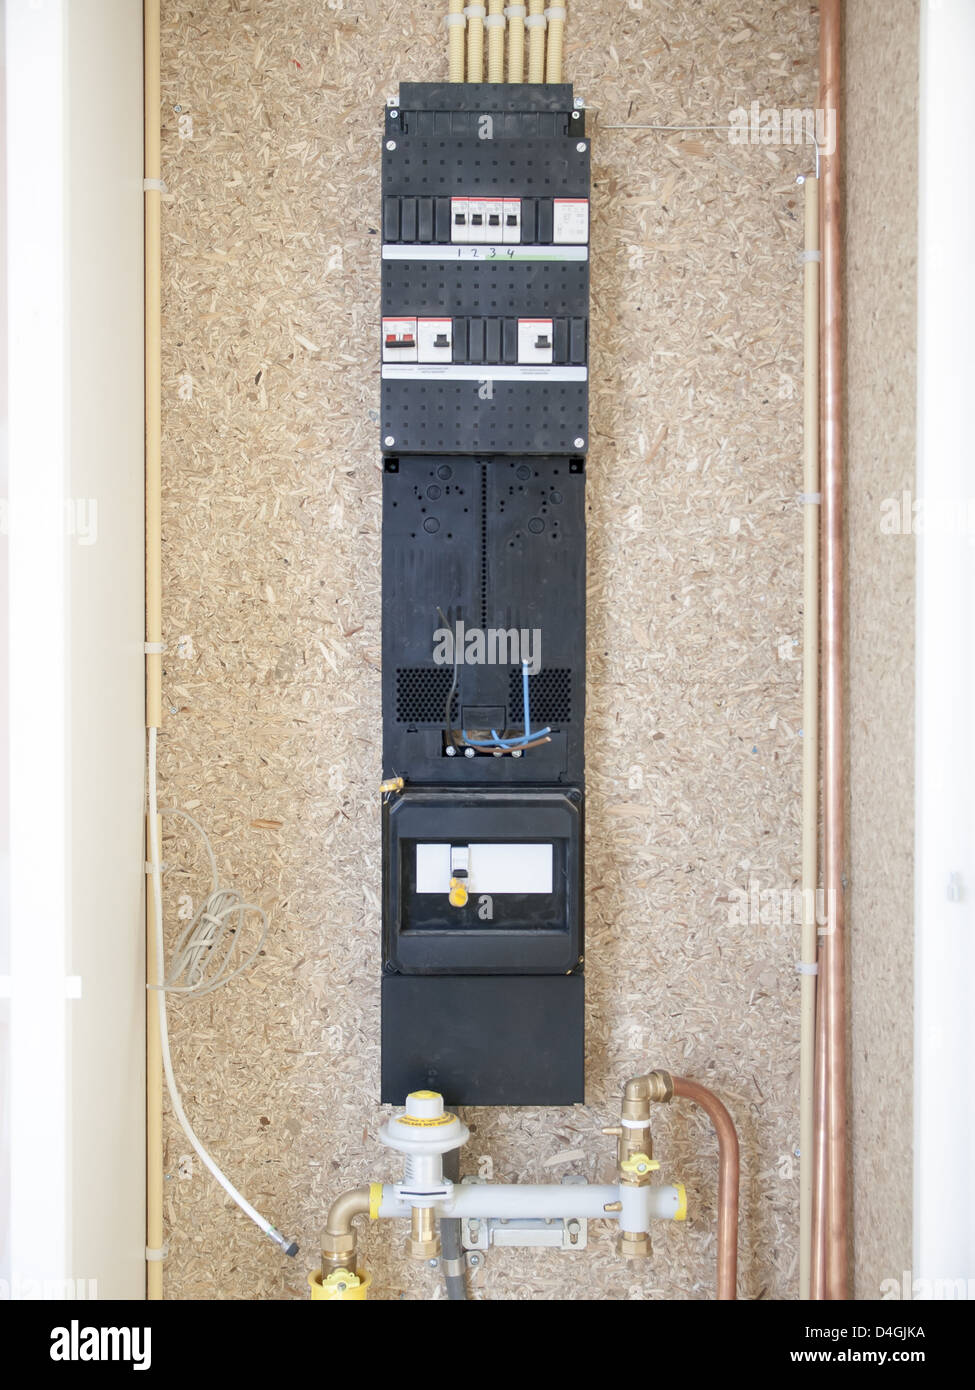 Electric Meter In House Stock Photos & Electric Meter In ...